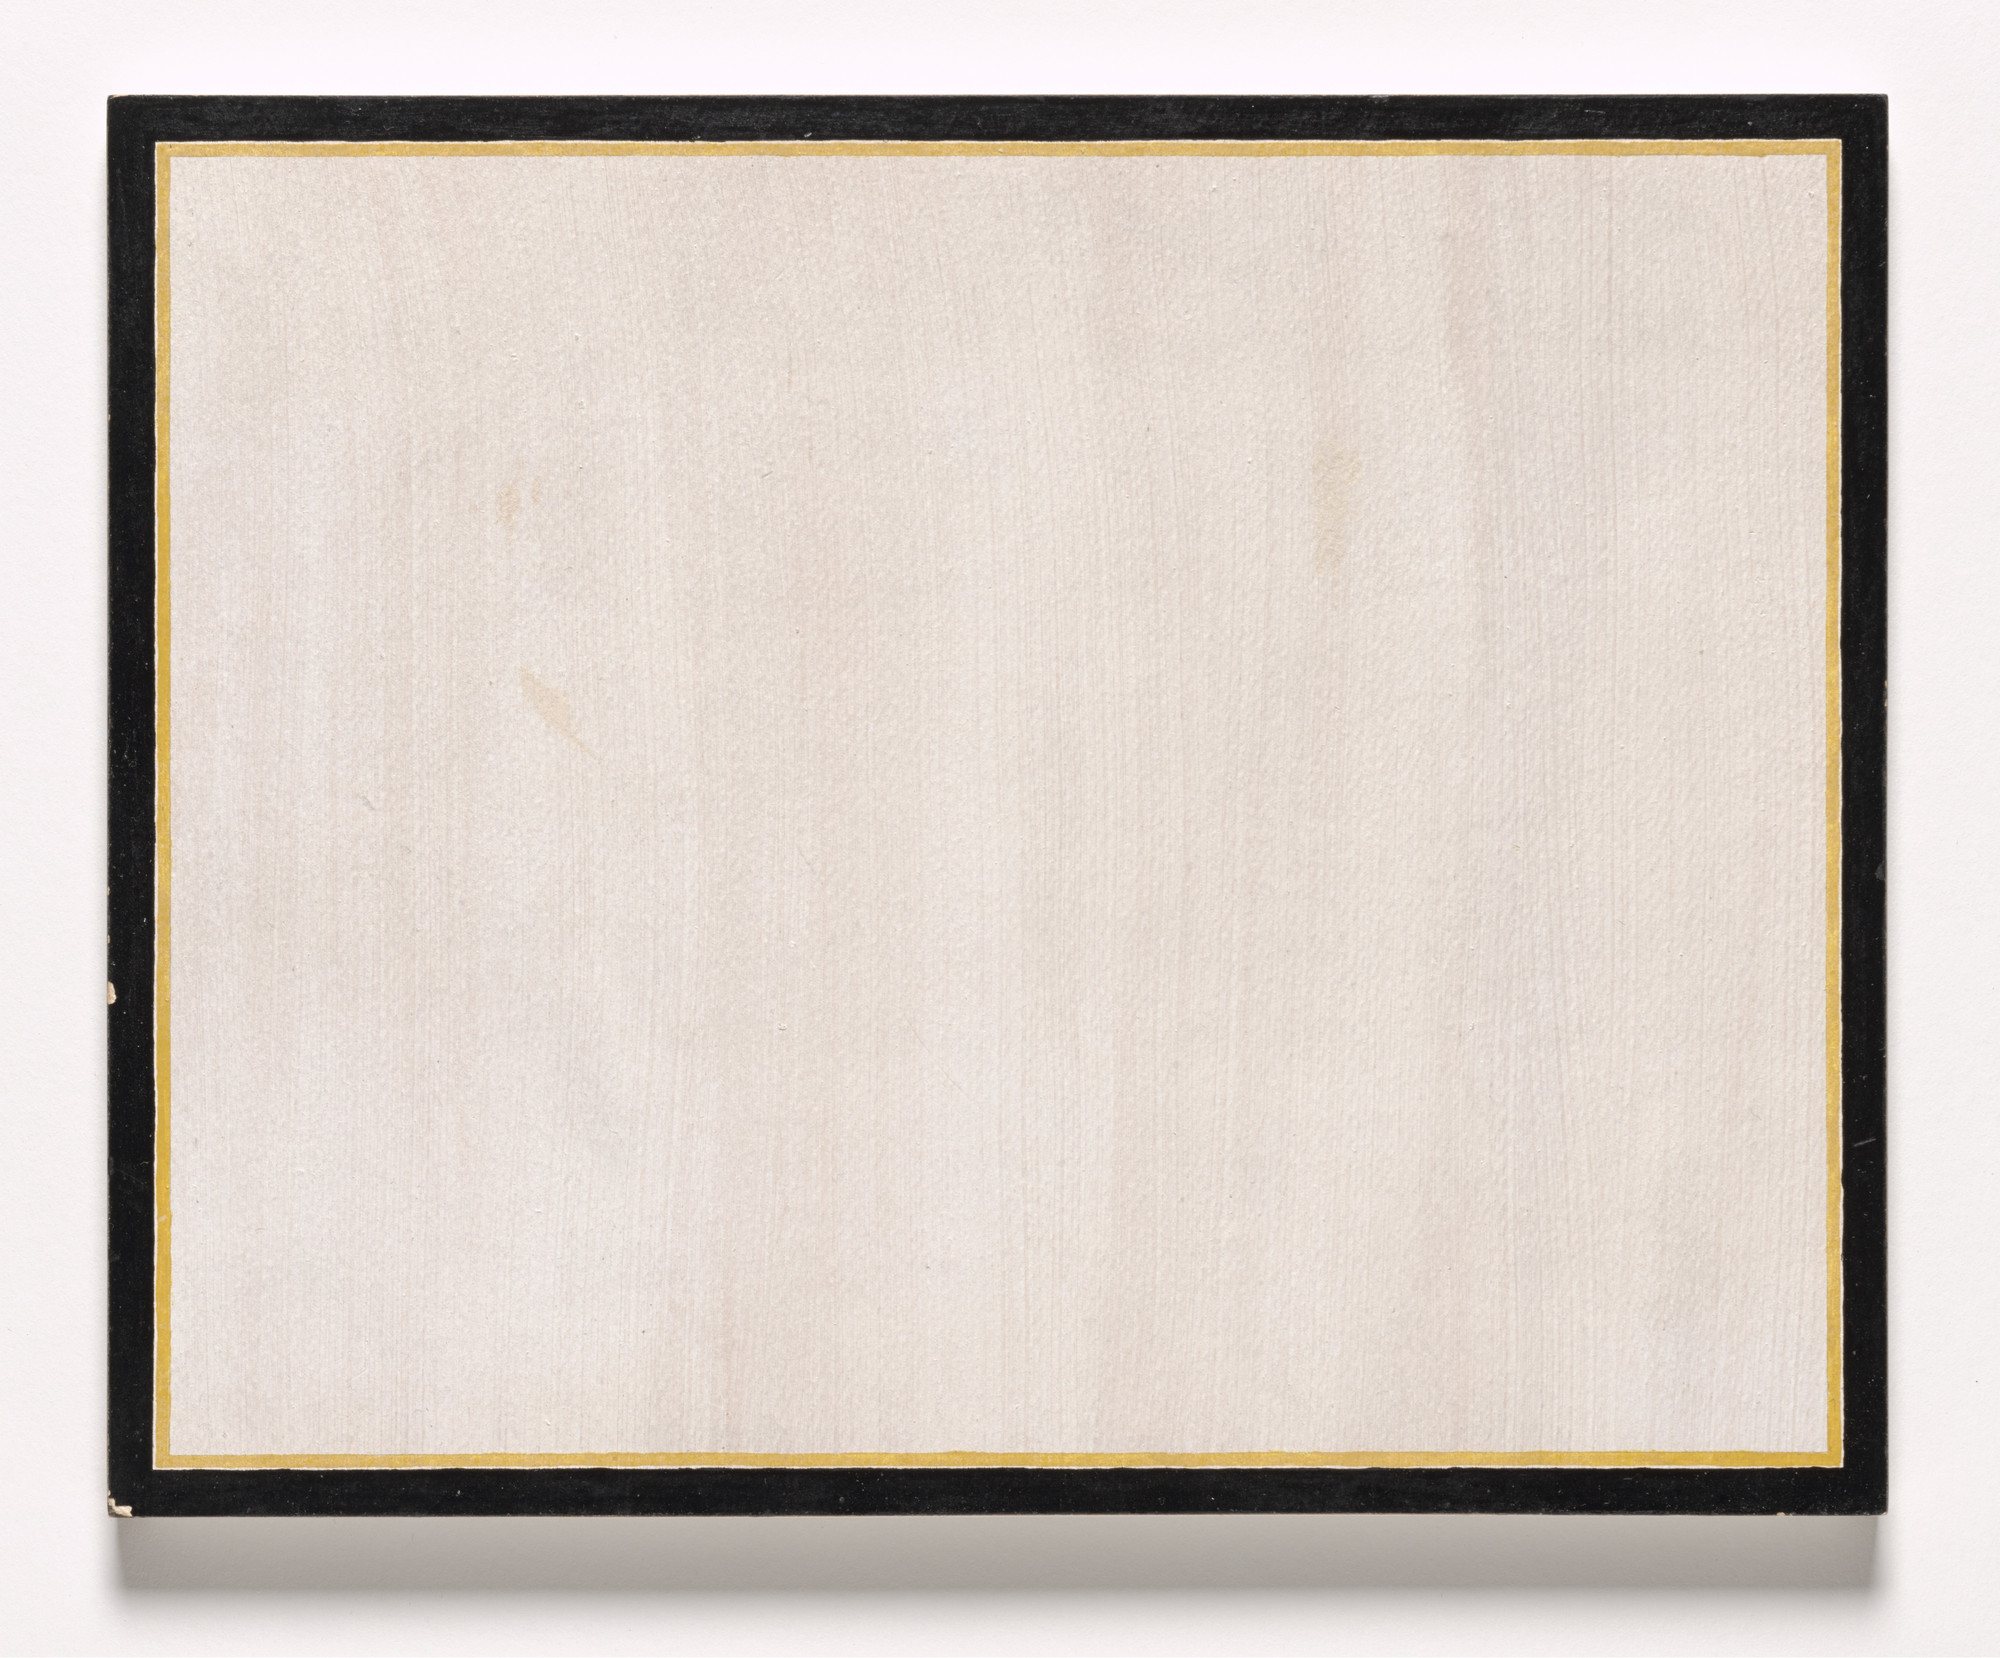 Jo Baer. Replica: White Horizontal (yellow line). 1965